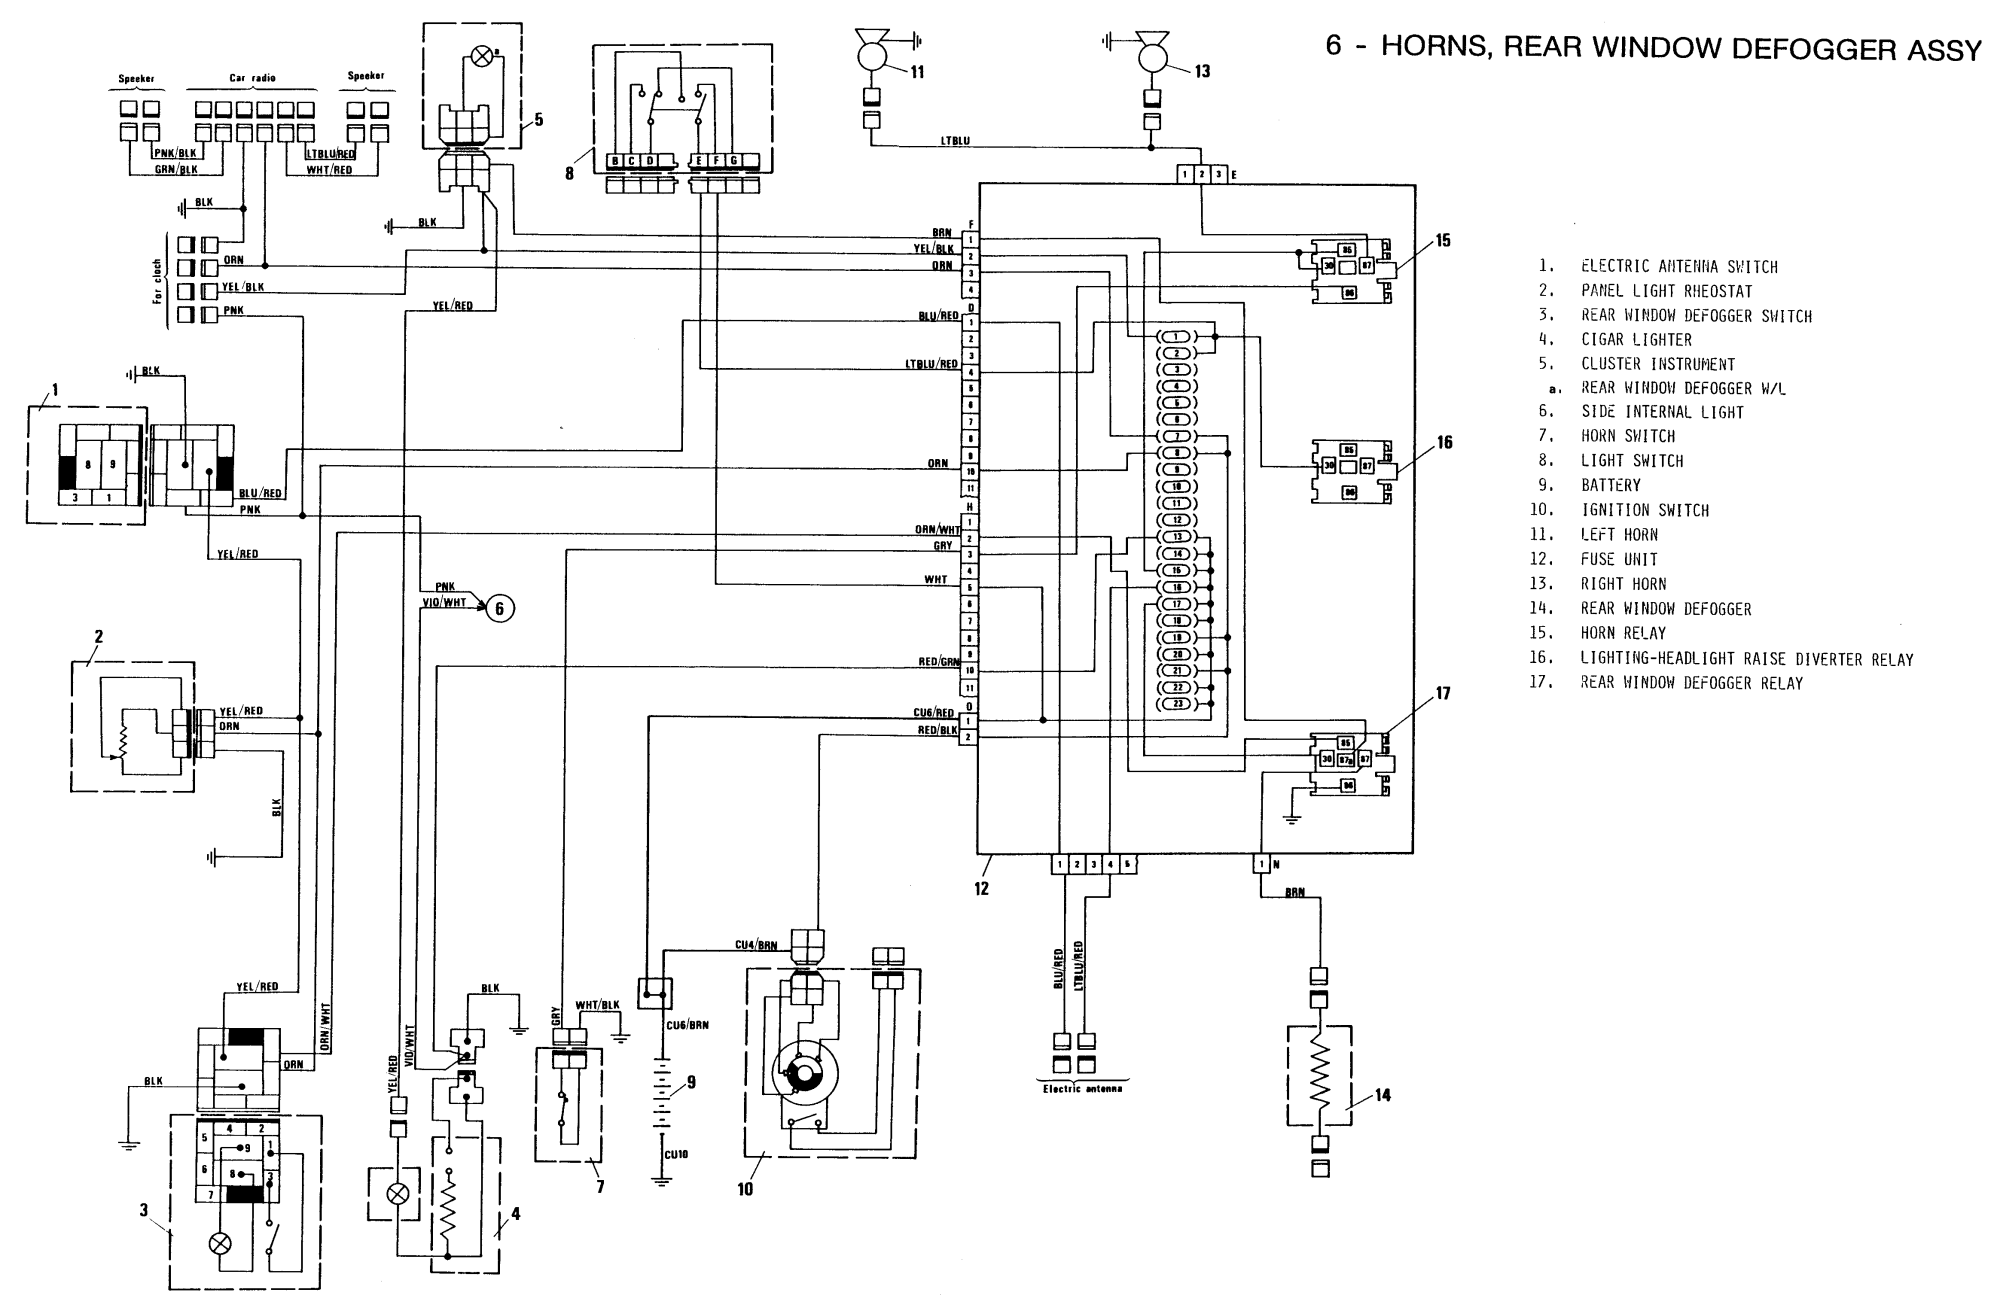 hight resolution of fiat x1 9 wiper fuse box diagram simple wiring schema two speed motor wiring diagram fiat punto wiper wiring diagram